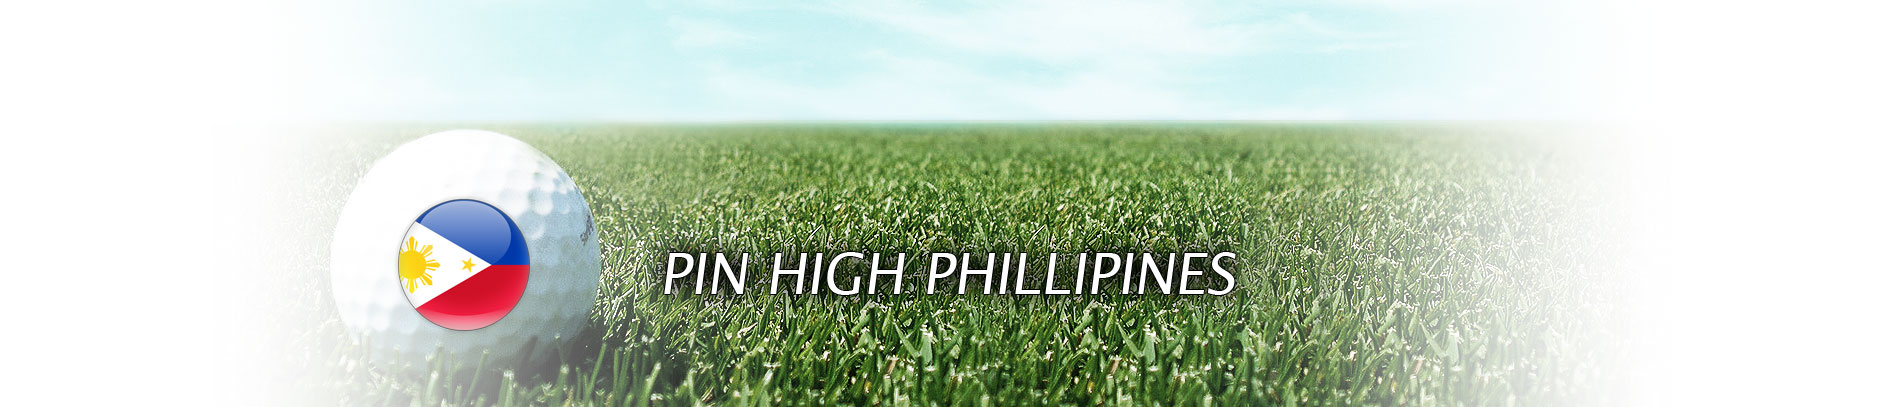 PIN HIGH PHILIPPINES